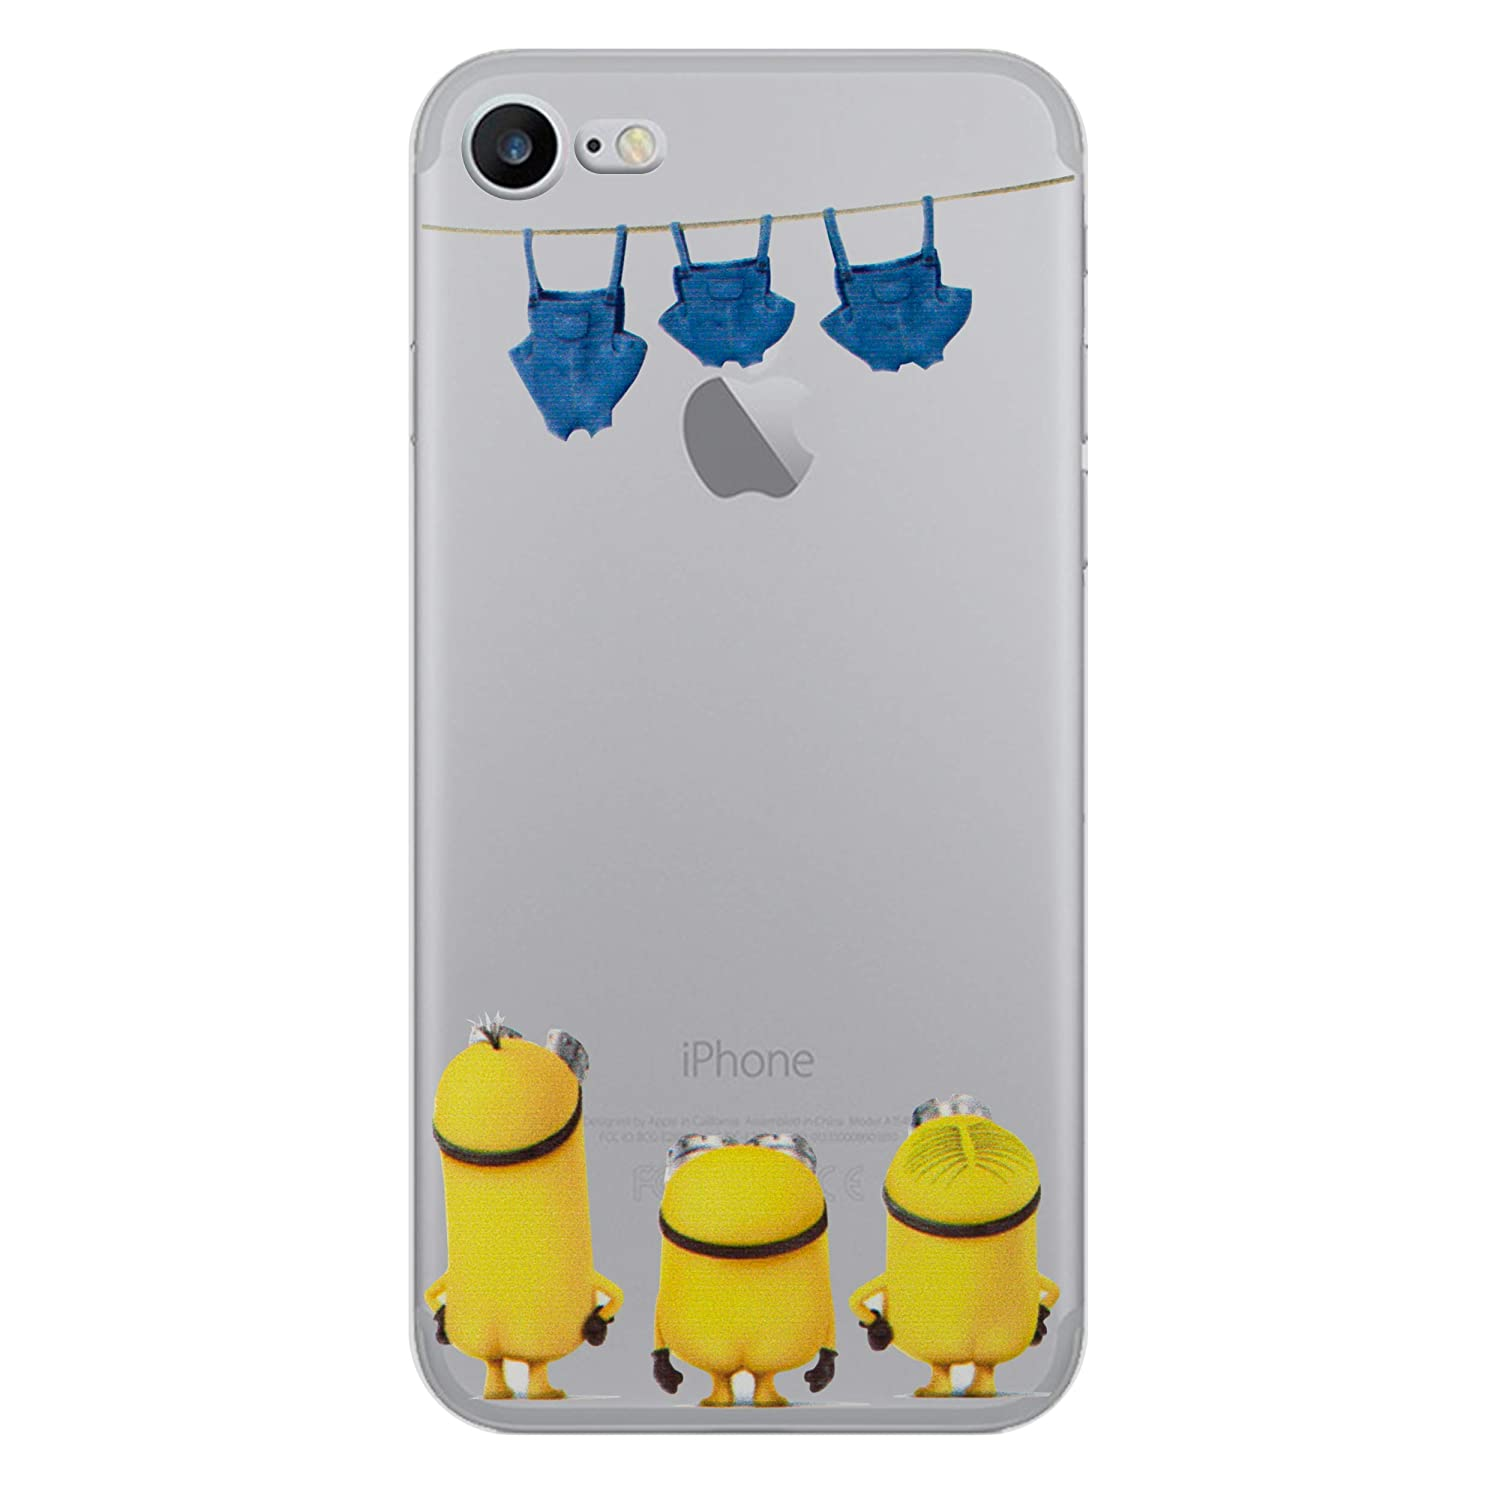 competitive price 7a946 8d32a iPhone 5/5s Minions Cartoon Silicone Phone Case / Gel Cover for Apple  iPhone 5s 5 SE / Screen Protector & Cloth / iCHOOSE / Washing